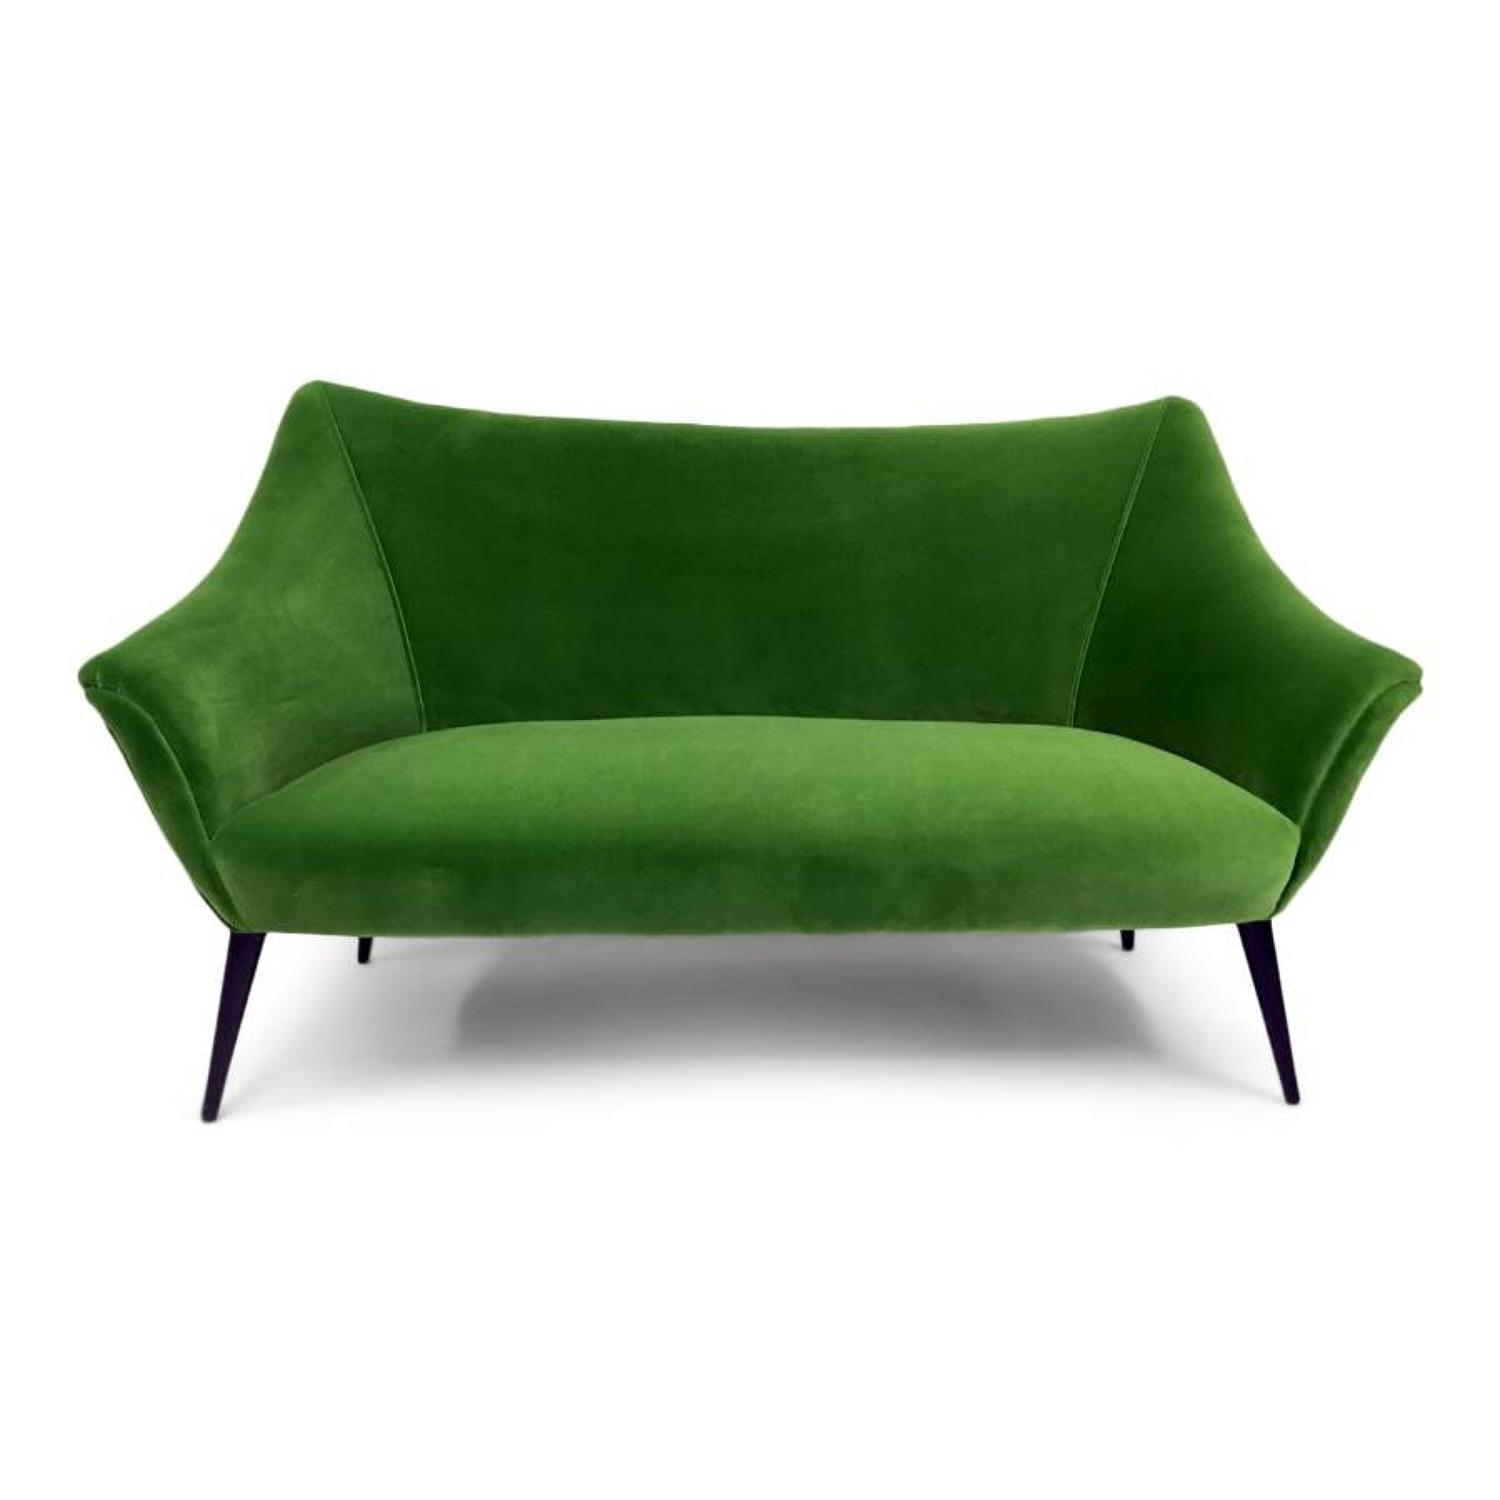 1950s Italian sofa in emerald velvet